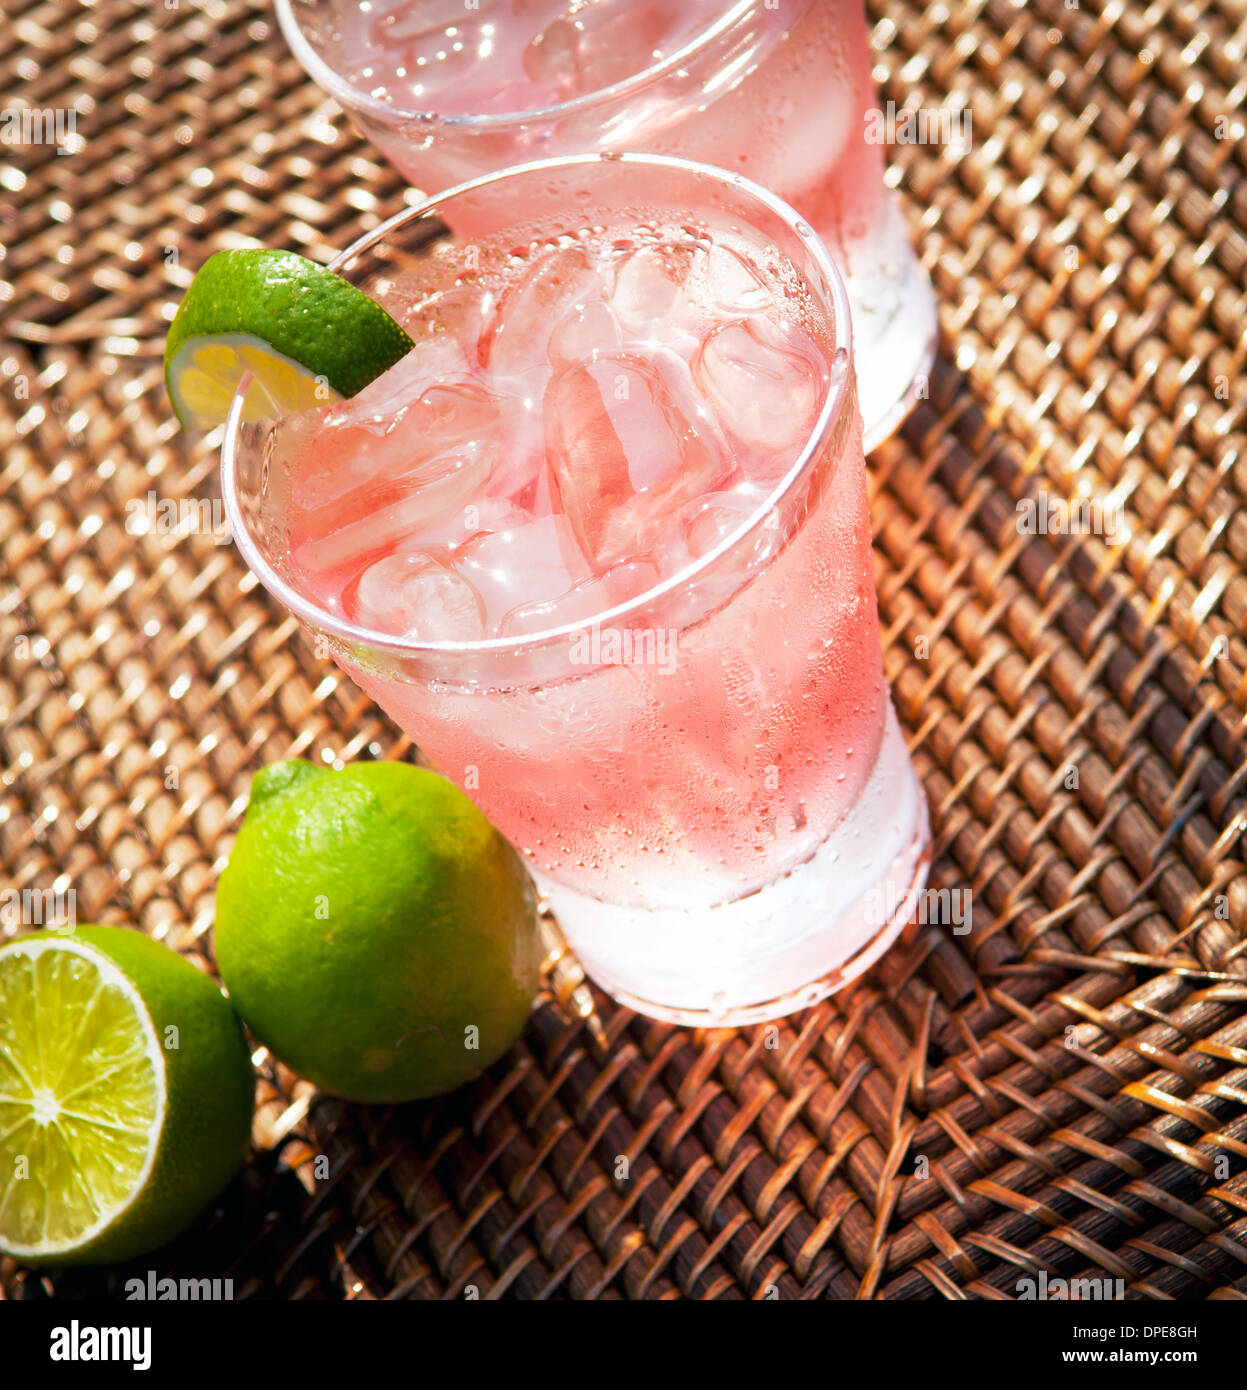 Pink Lemonade with Limes - Stock Image